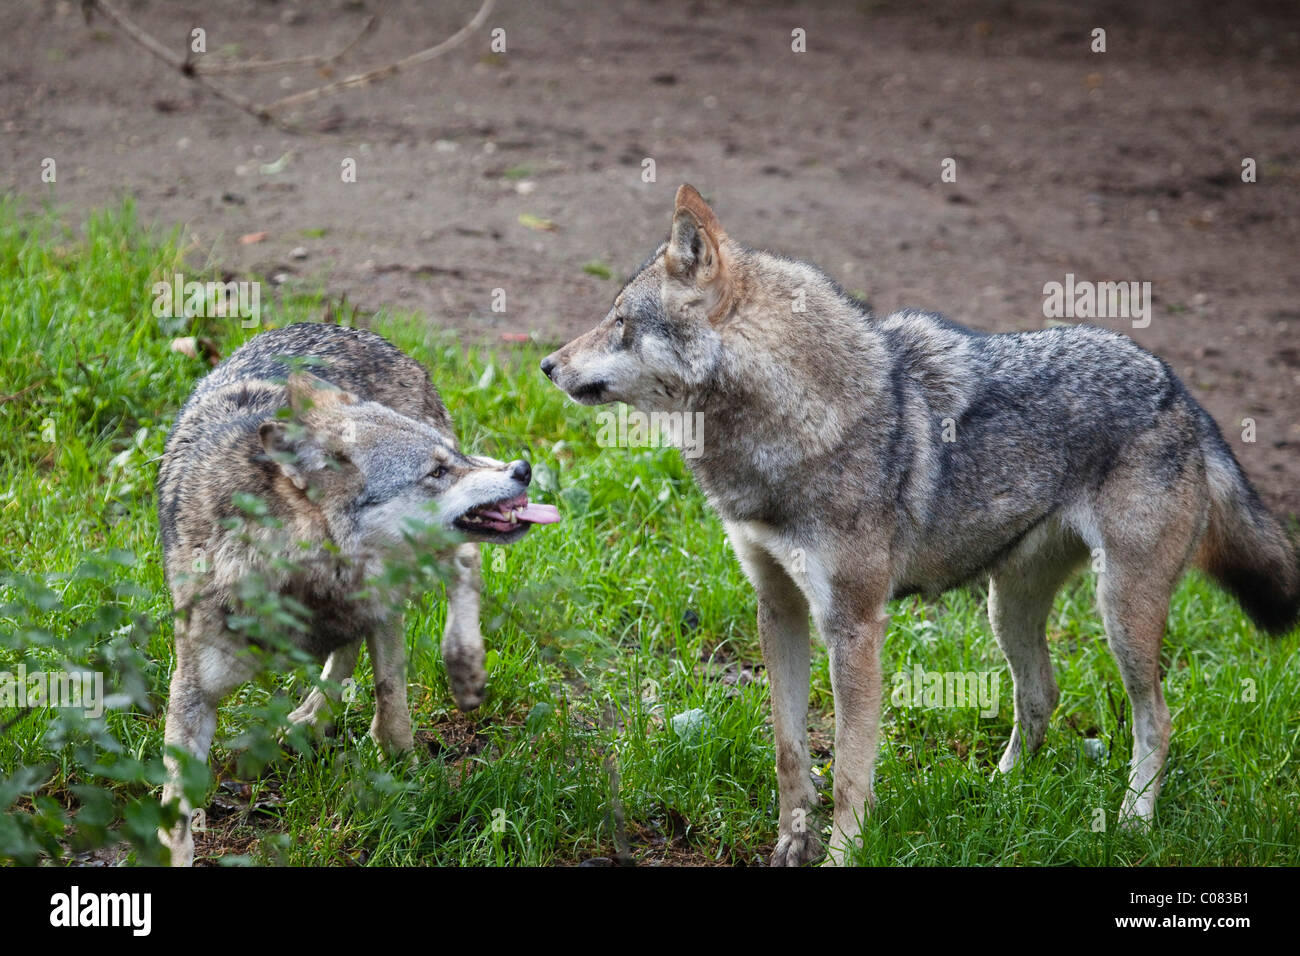 Wolves (Canis lupus), submissive gestures, behavior, Europe - Stock Image